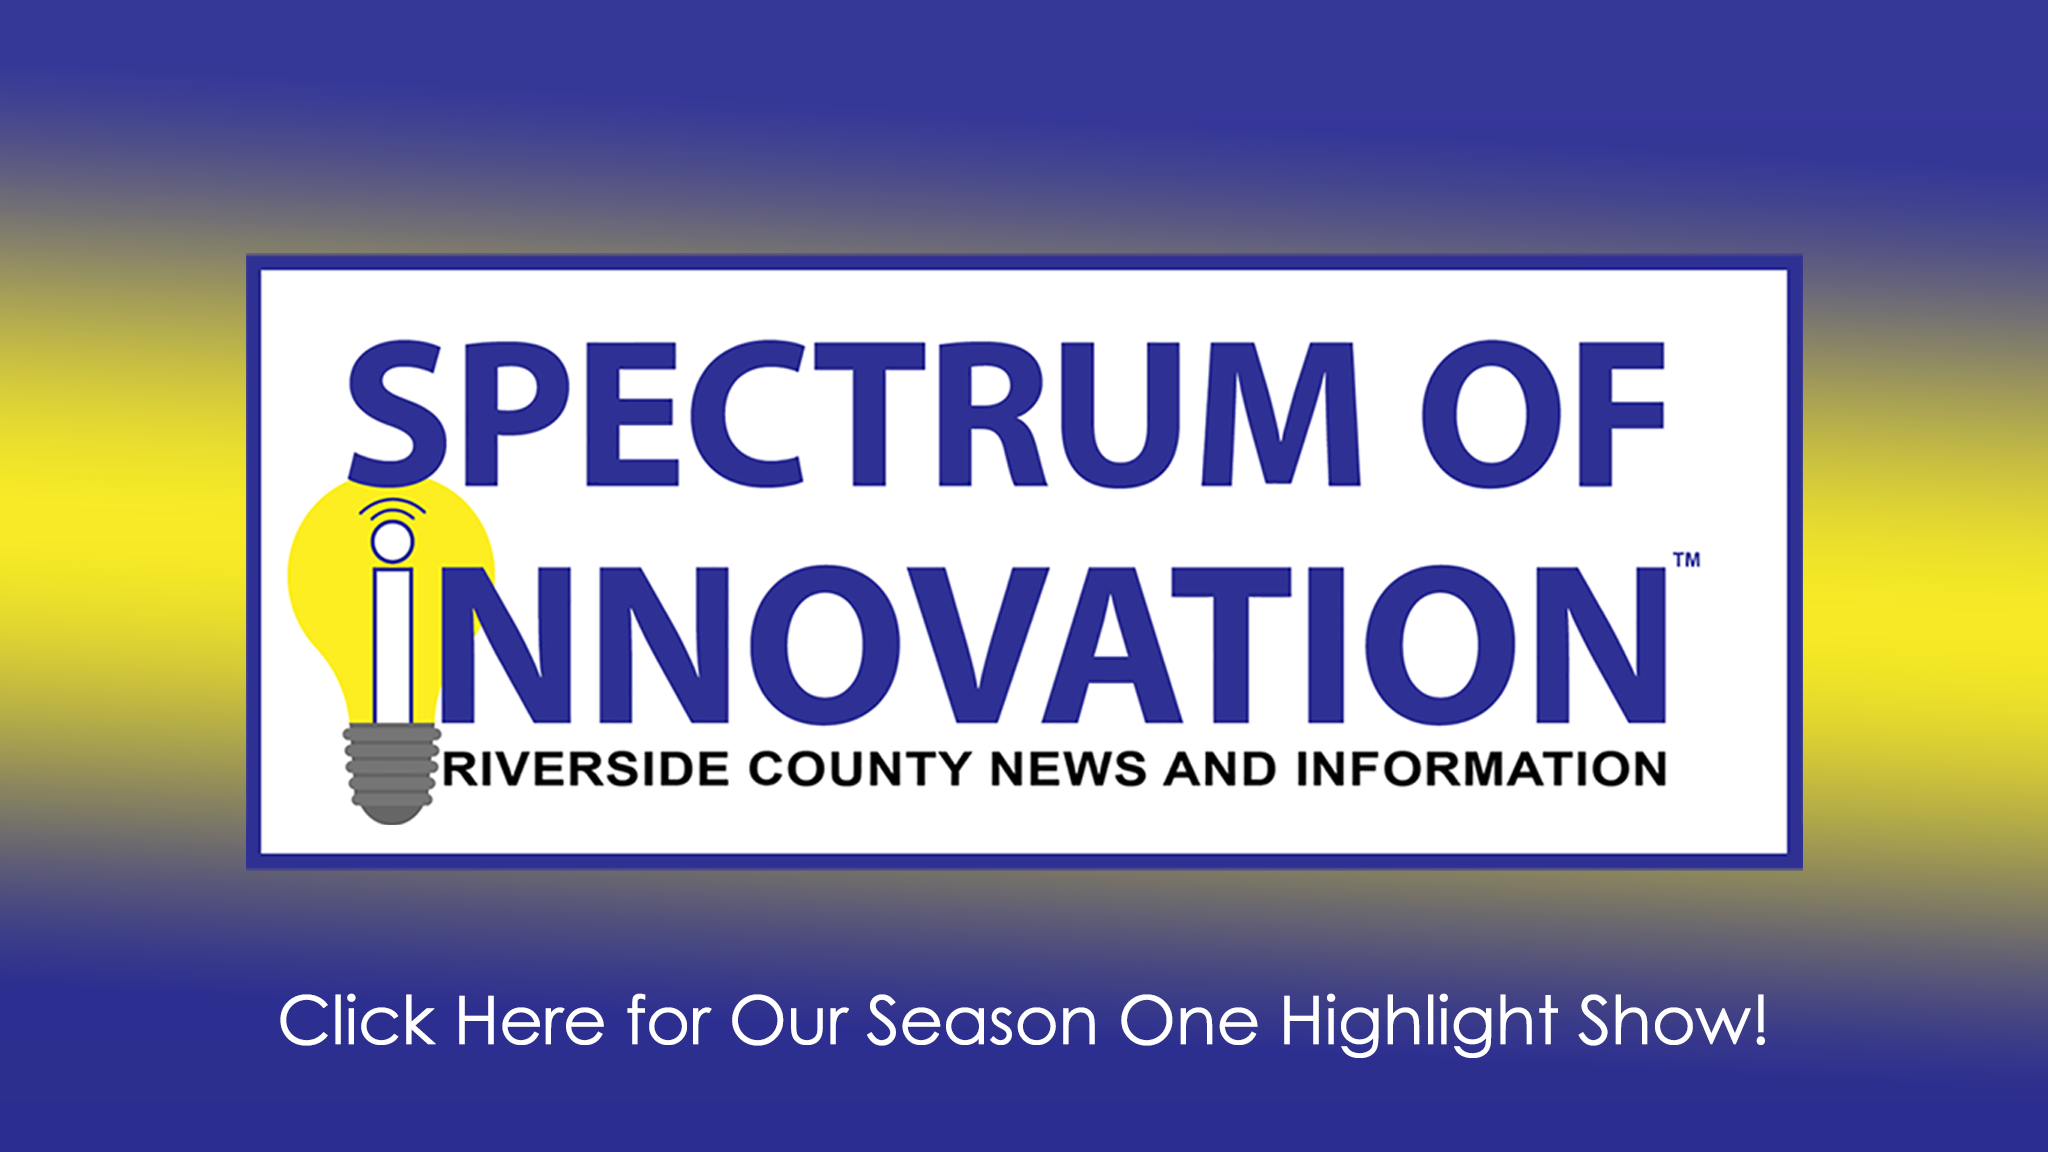 Spectrum of Innovation Live Stream episodes